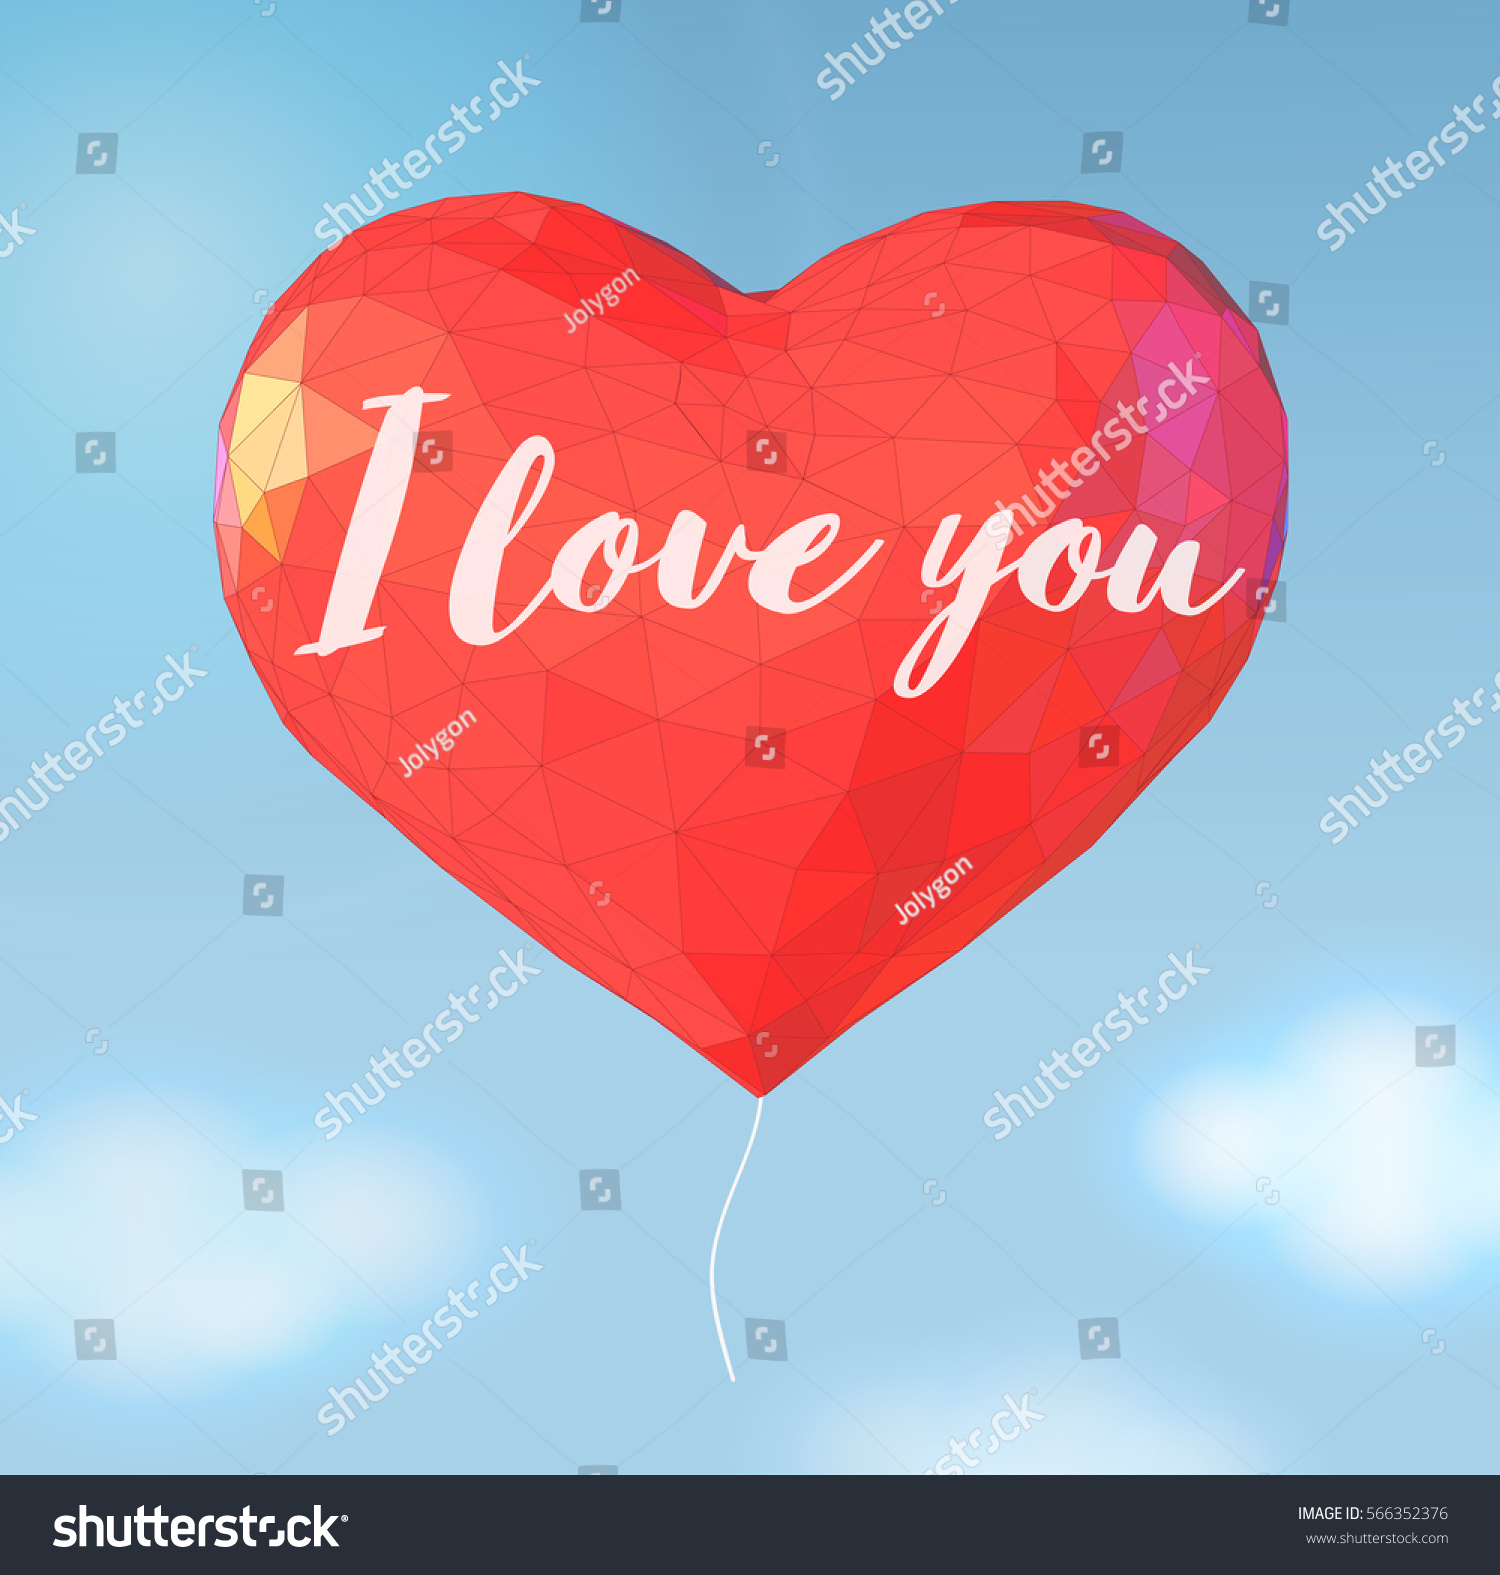 Big red polygonal balloon heart symbol stock vector 566352376 big red polygonal balloon heart symbol shape on blue sky background with text message for valentine buycottarizona Image collections